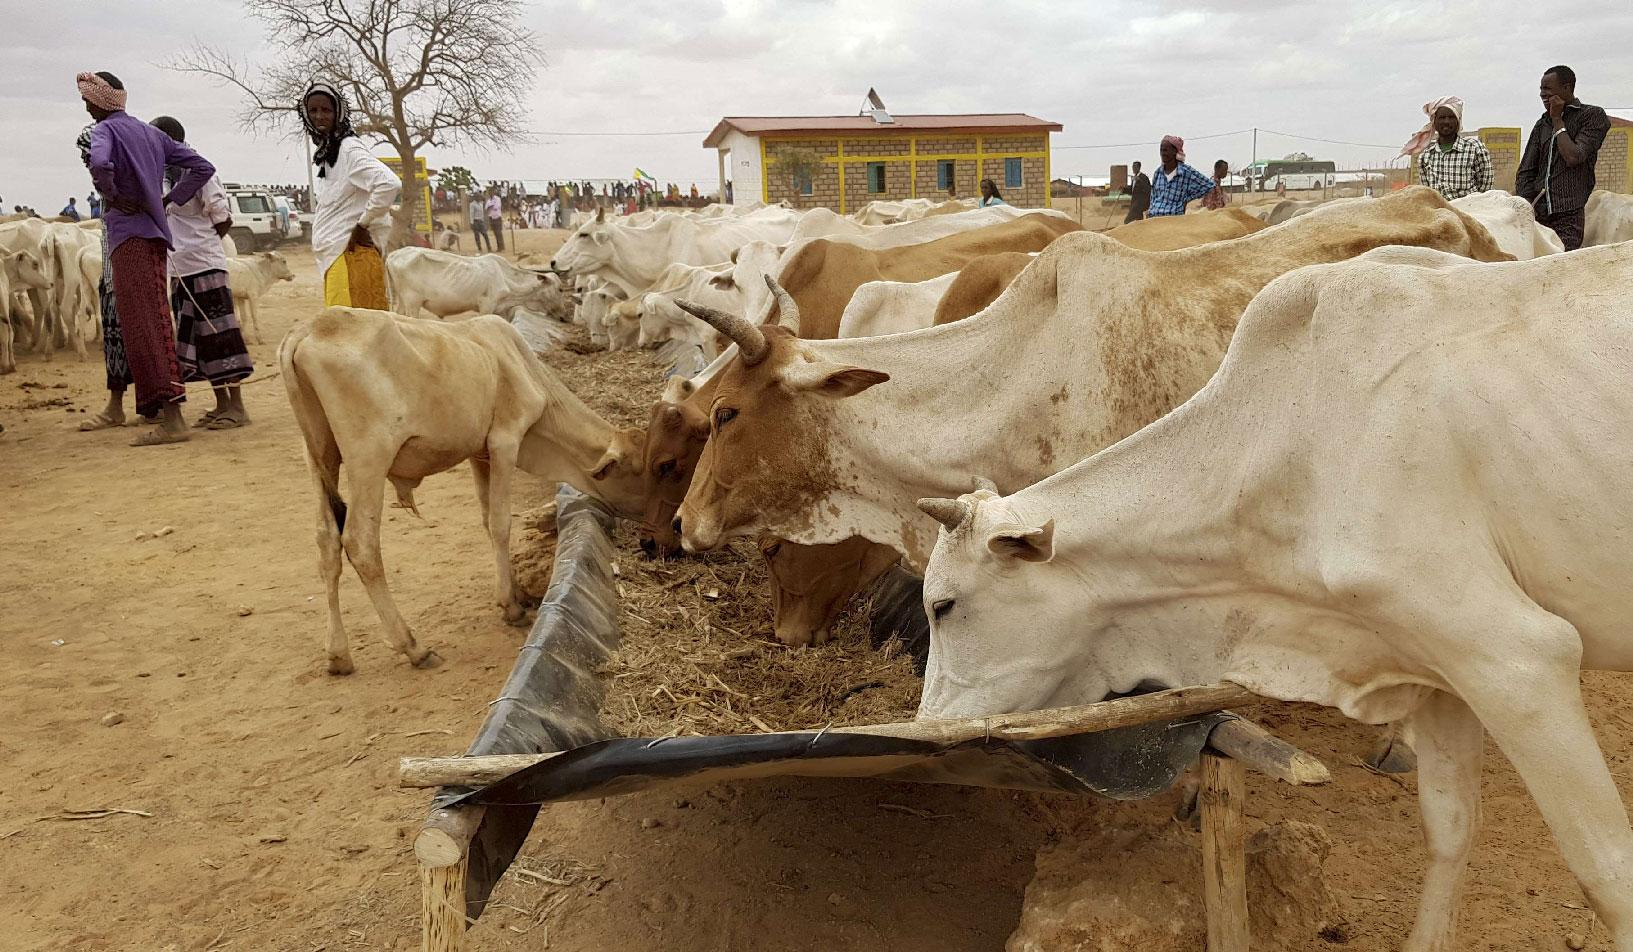 Ethiopian pastoralists feed their cattle.